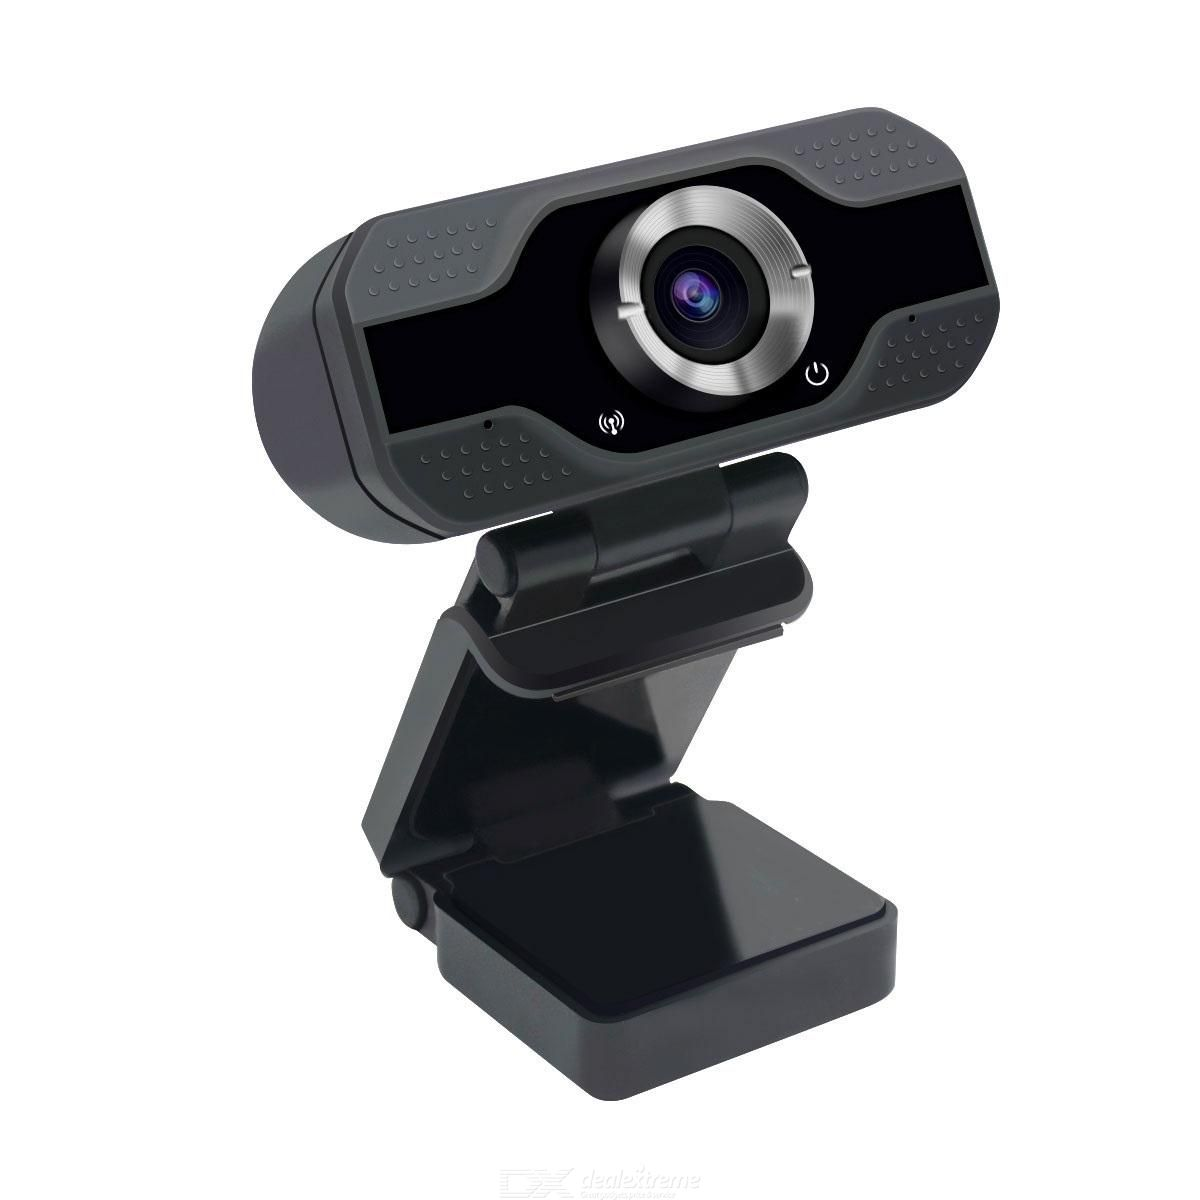 ESCAM PVR006 1080P USB2.0 HD Webcam with Microphone for PC